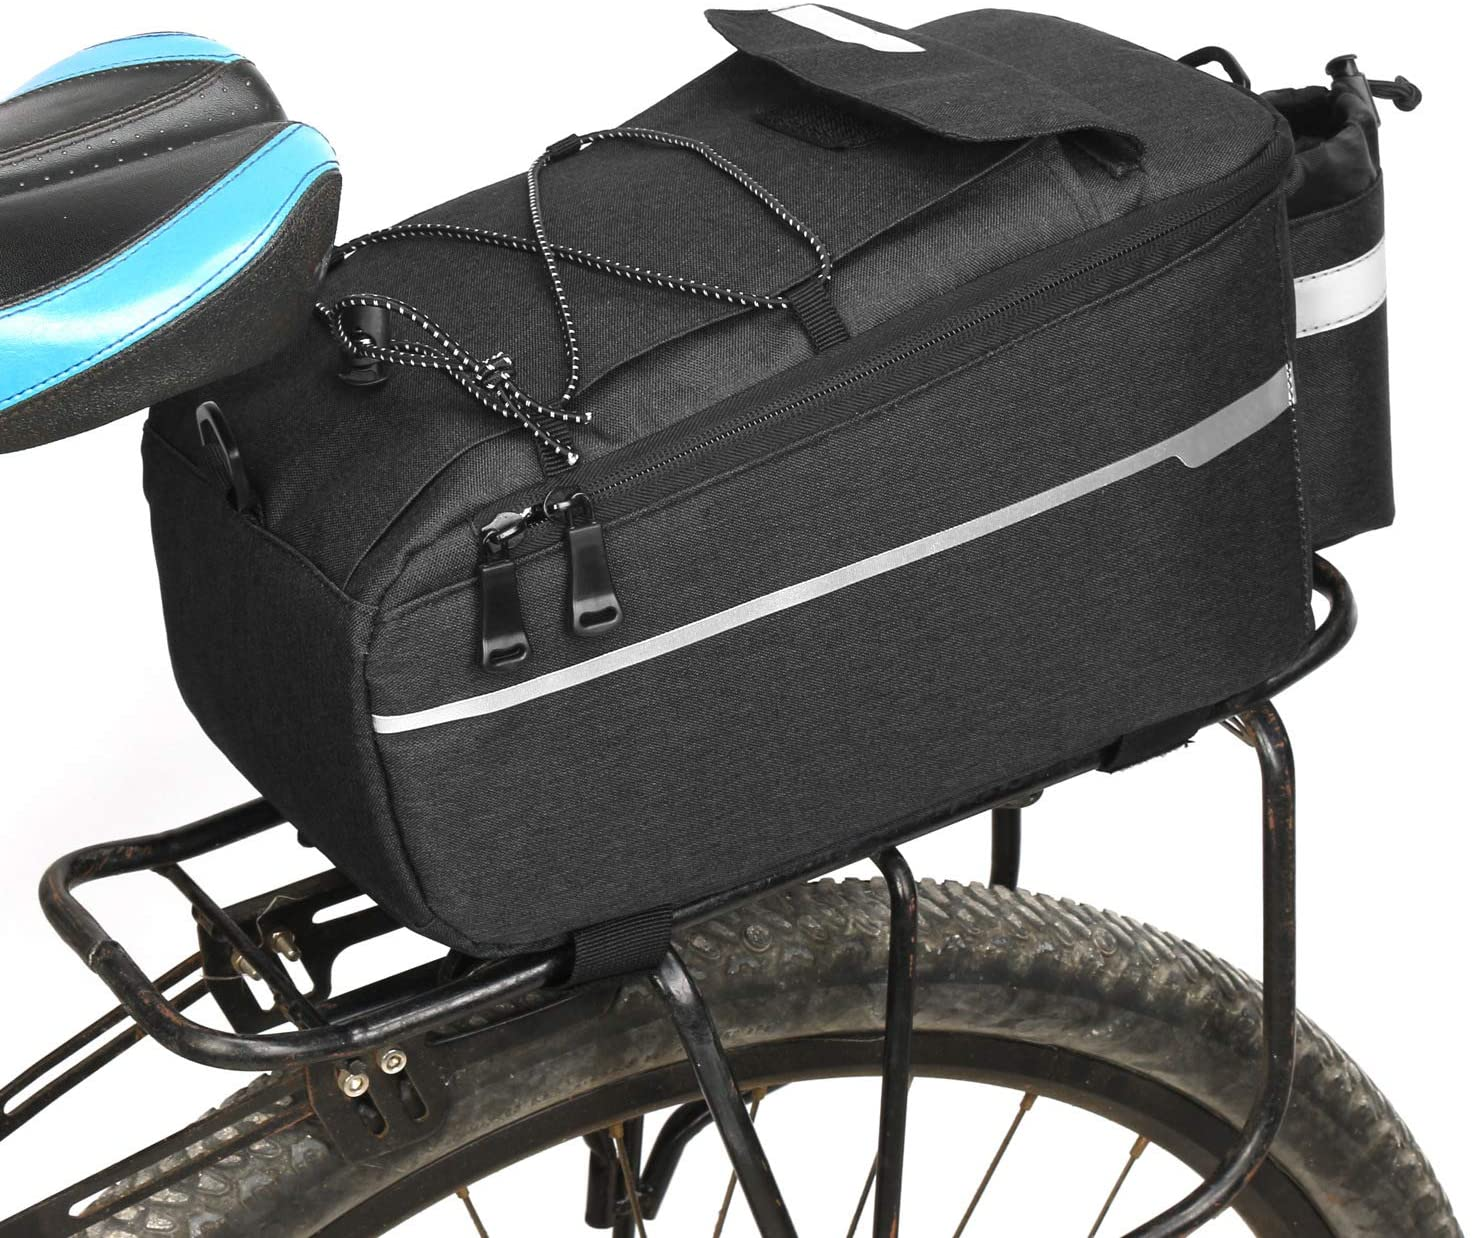 TecHong Bike Back Seat Bag - Bicycle Waterproof Rack Storage Pannier, Large Capacity Cycling Accessories Tool Store Trunk Pack for Road Mountain Bike Riding